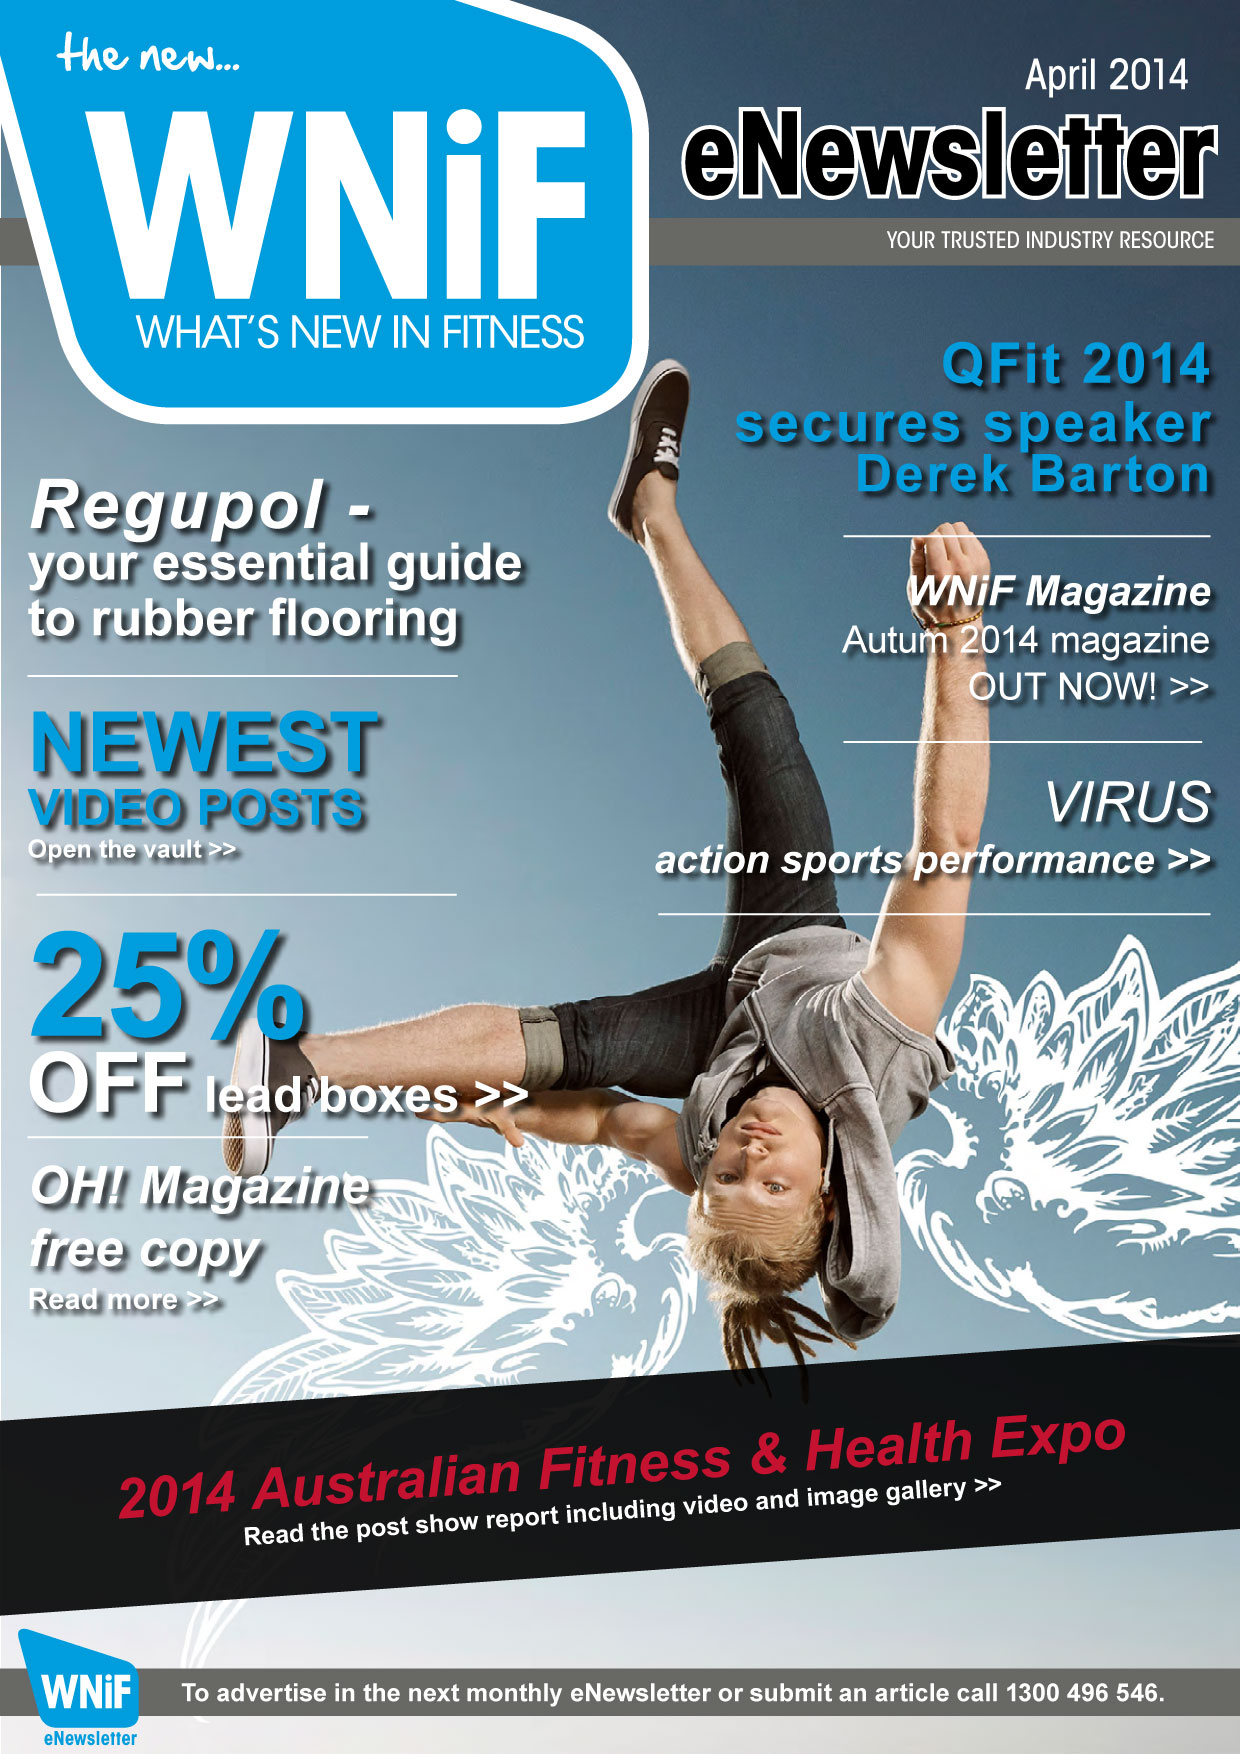 WNIF eNewsletter - April 2014